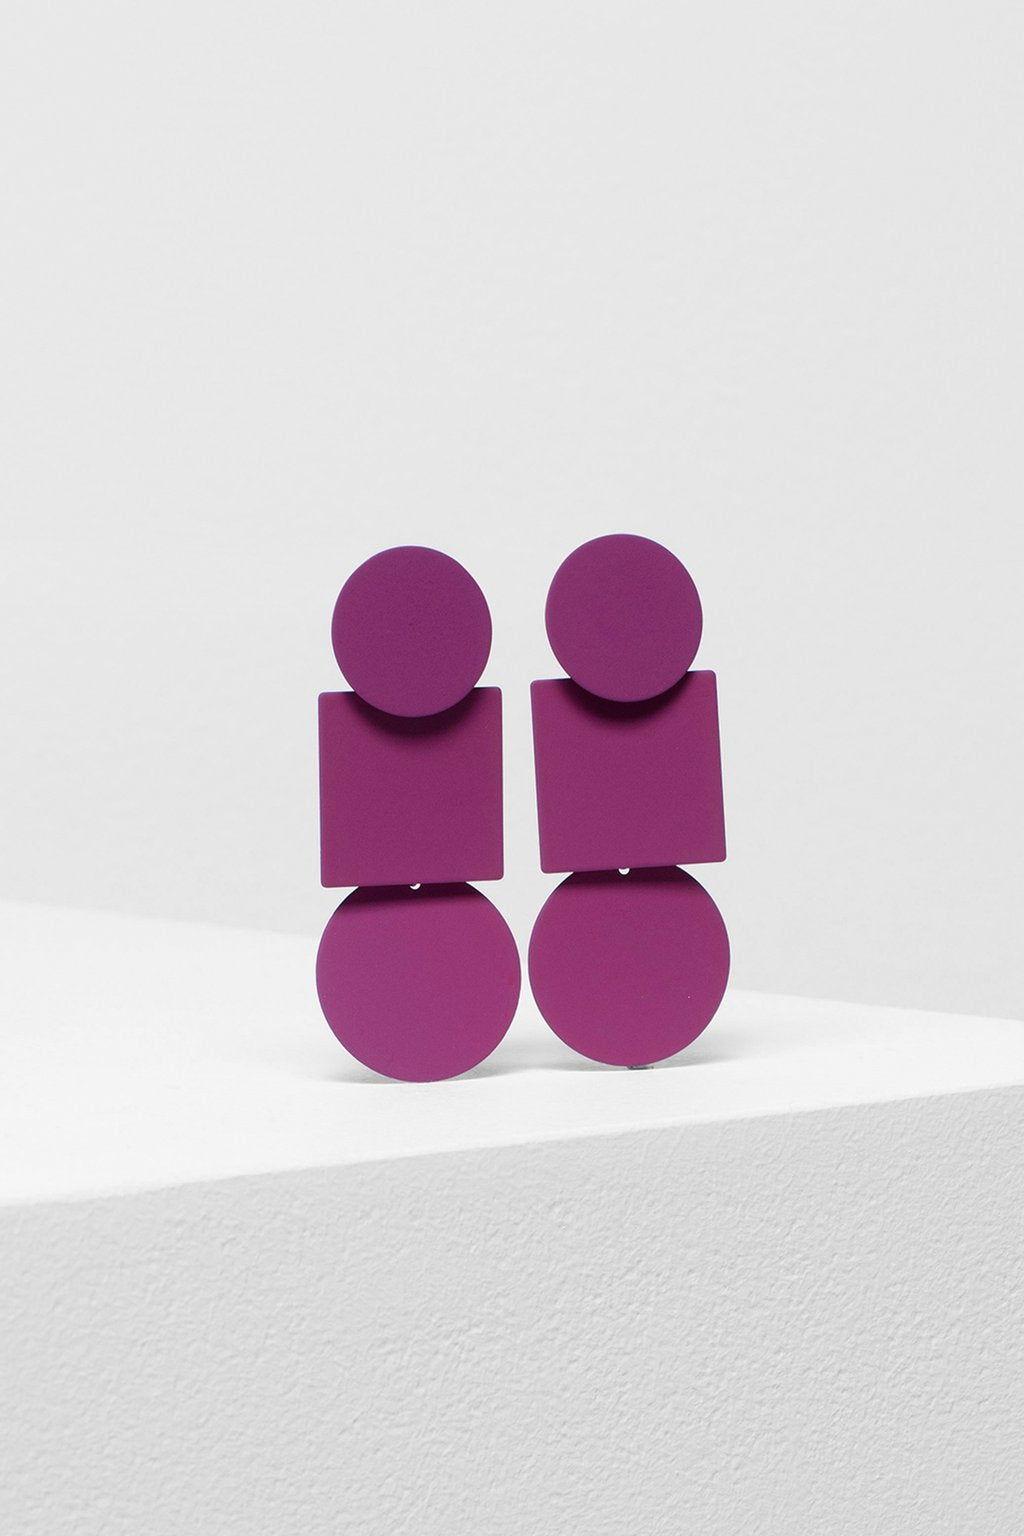 ELK The Label - Fala Drop Earrings - Magenta online at PAYA boutique